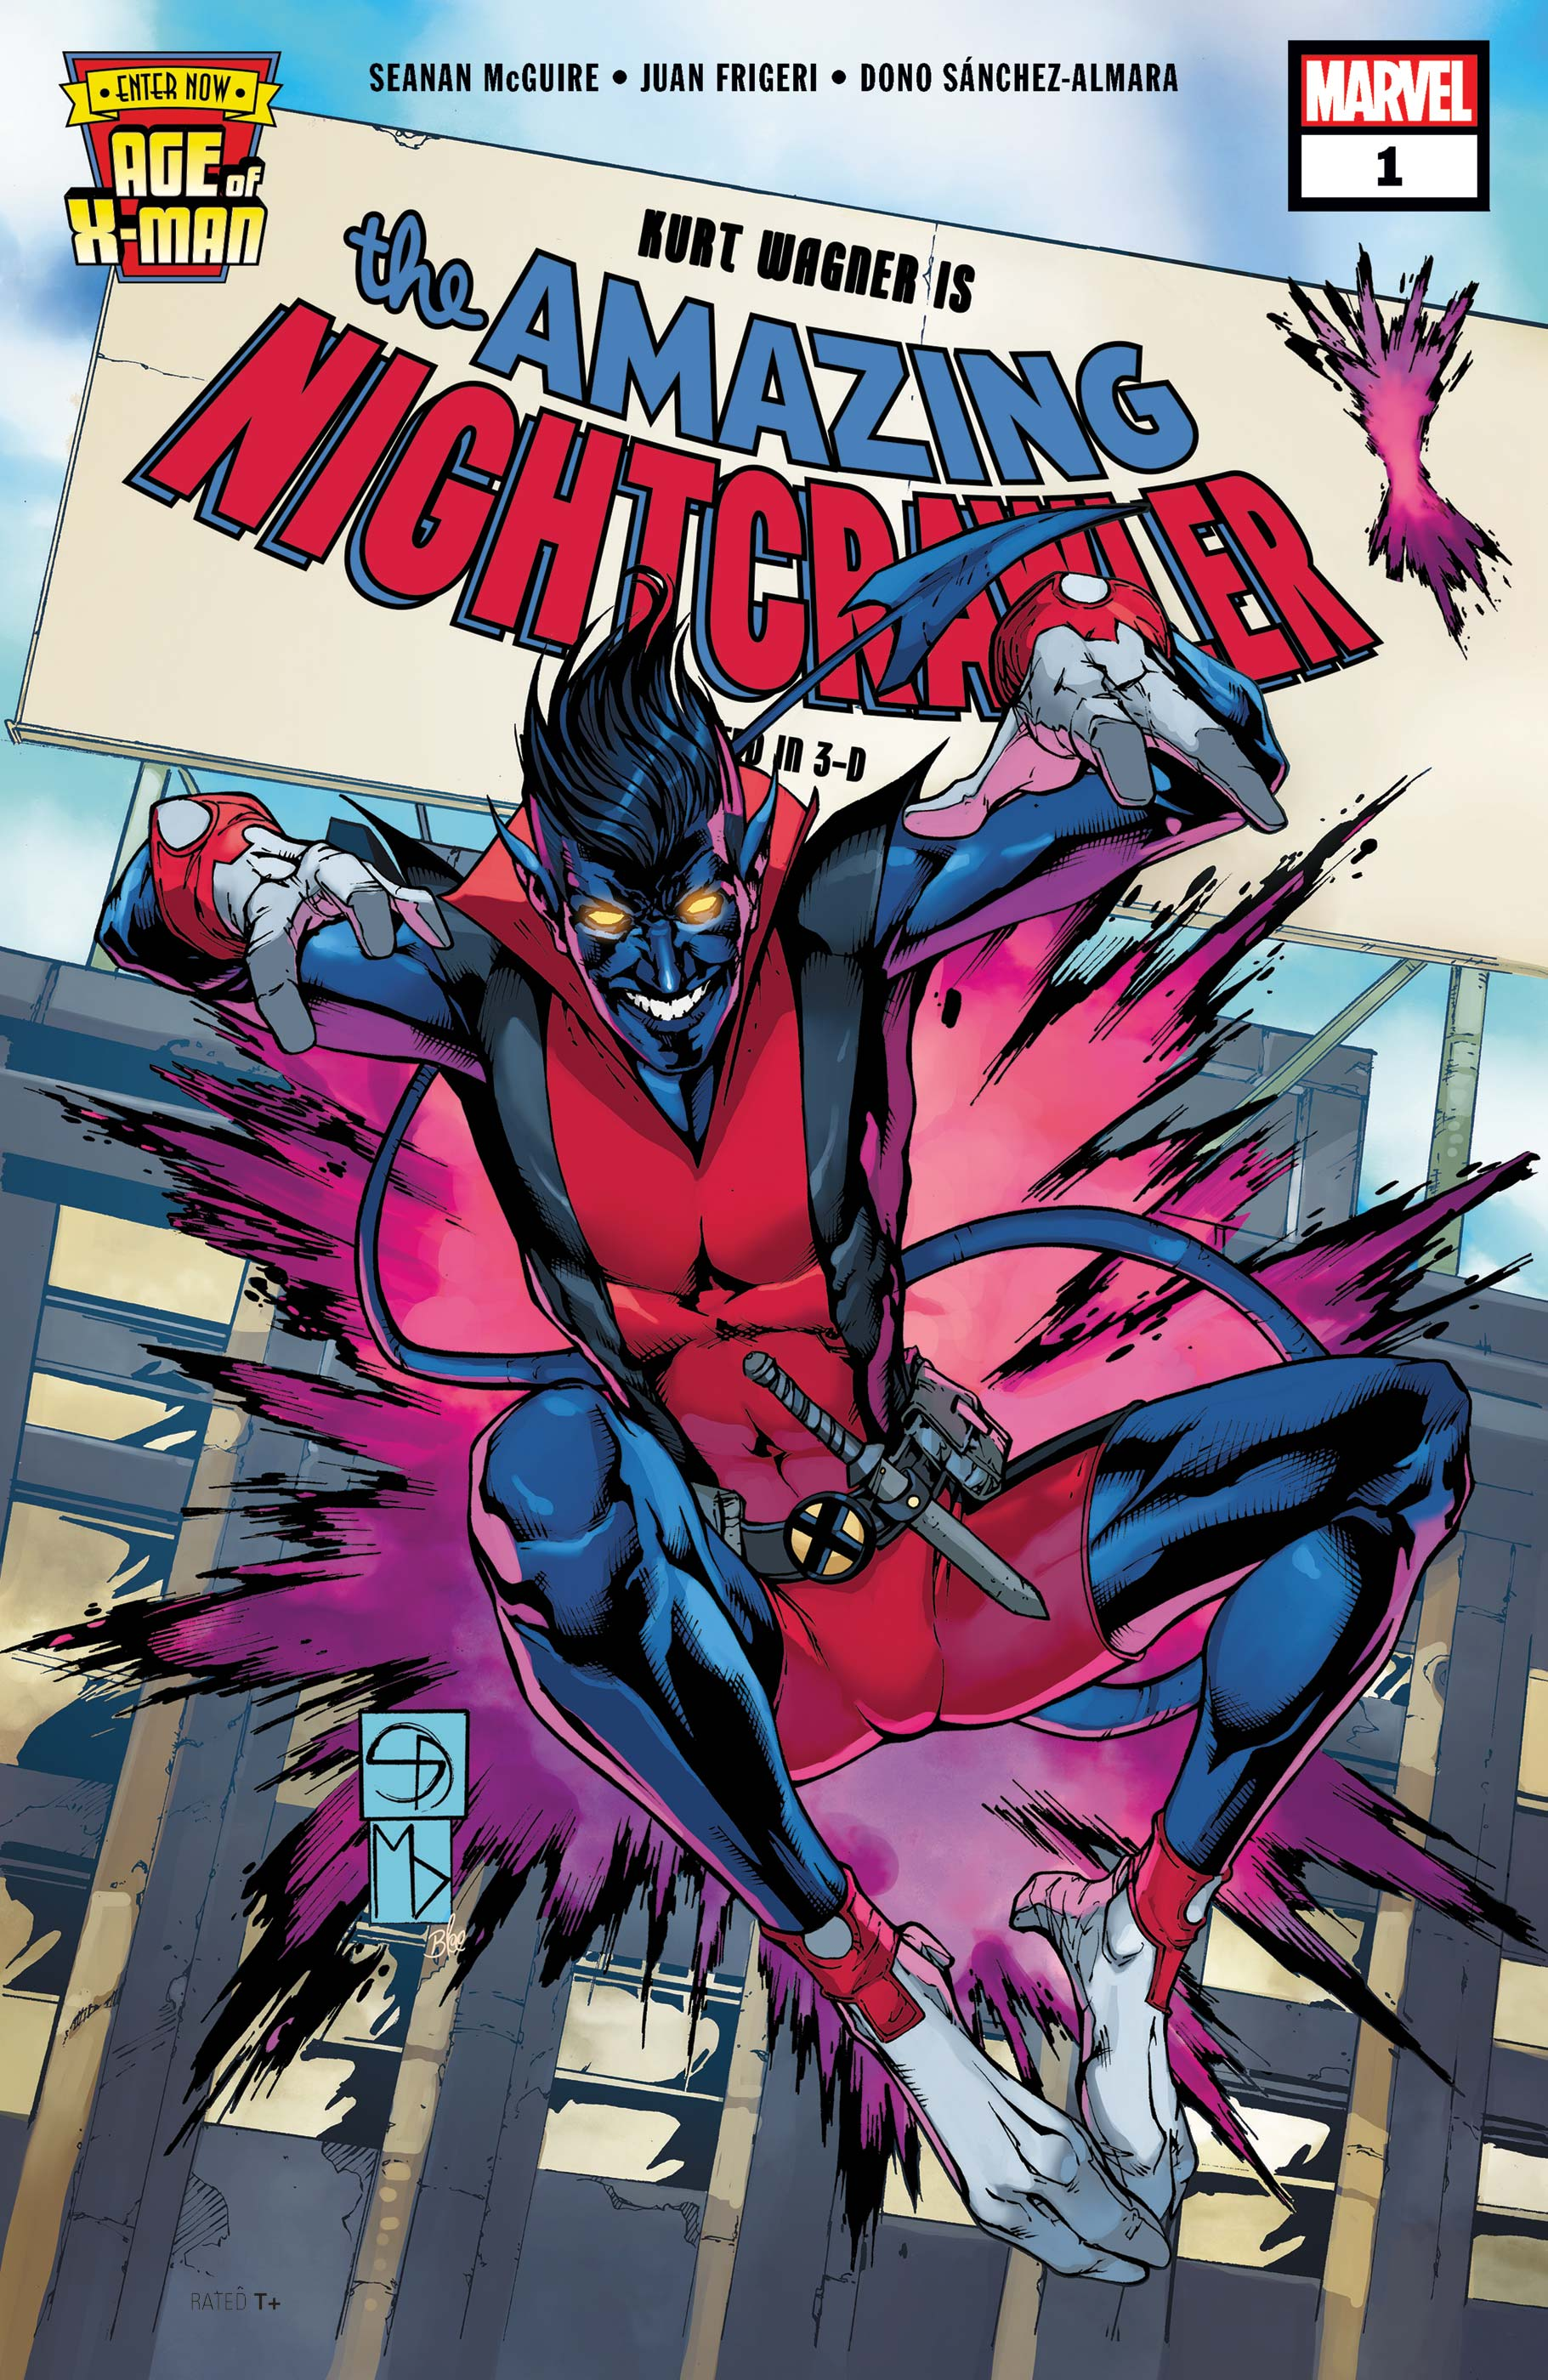 Age of X-Man: The Amazing Nightcrawler (2019) #1